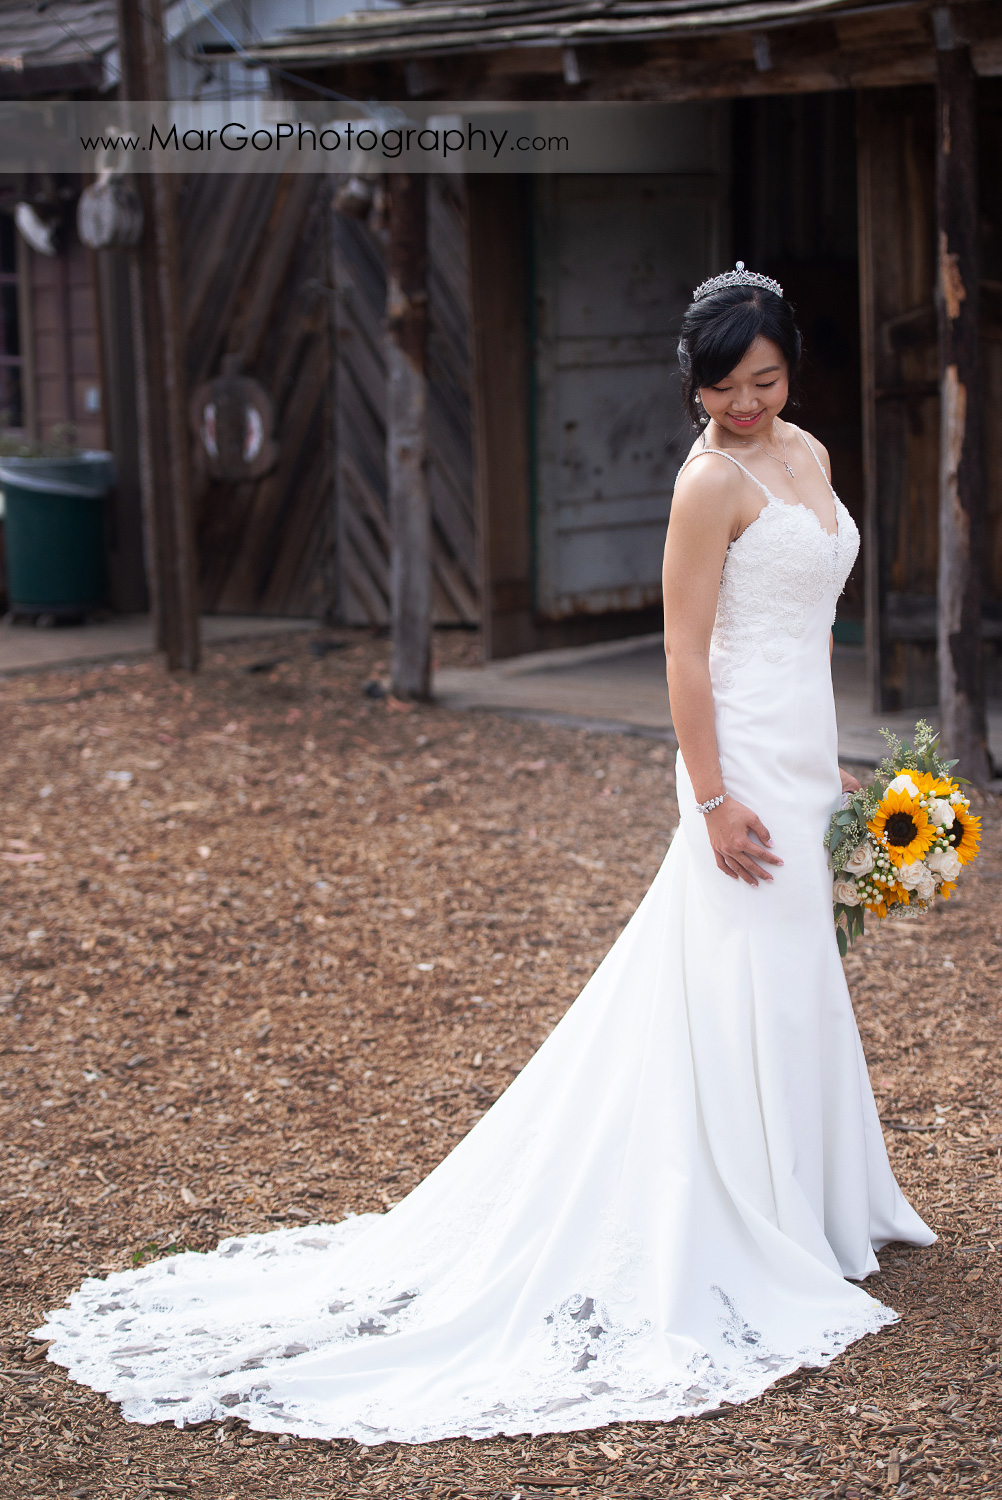 full body portrait of the bride in white dress with yellow flower bouquet at Long Branch Saloon & Farms in Half Moon Bay